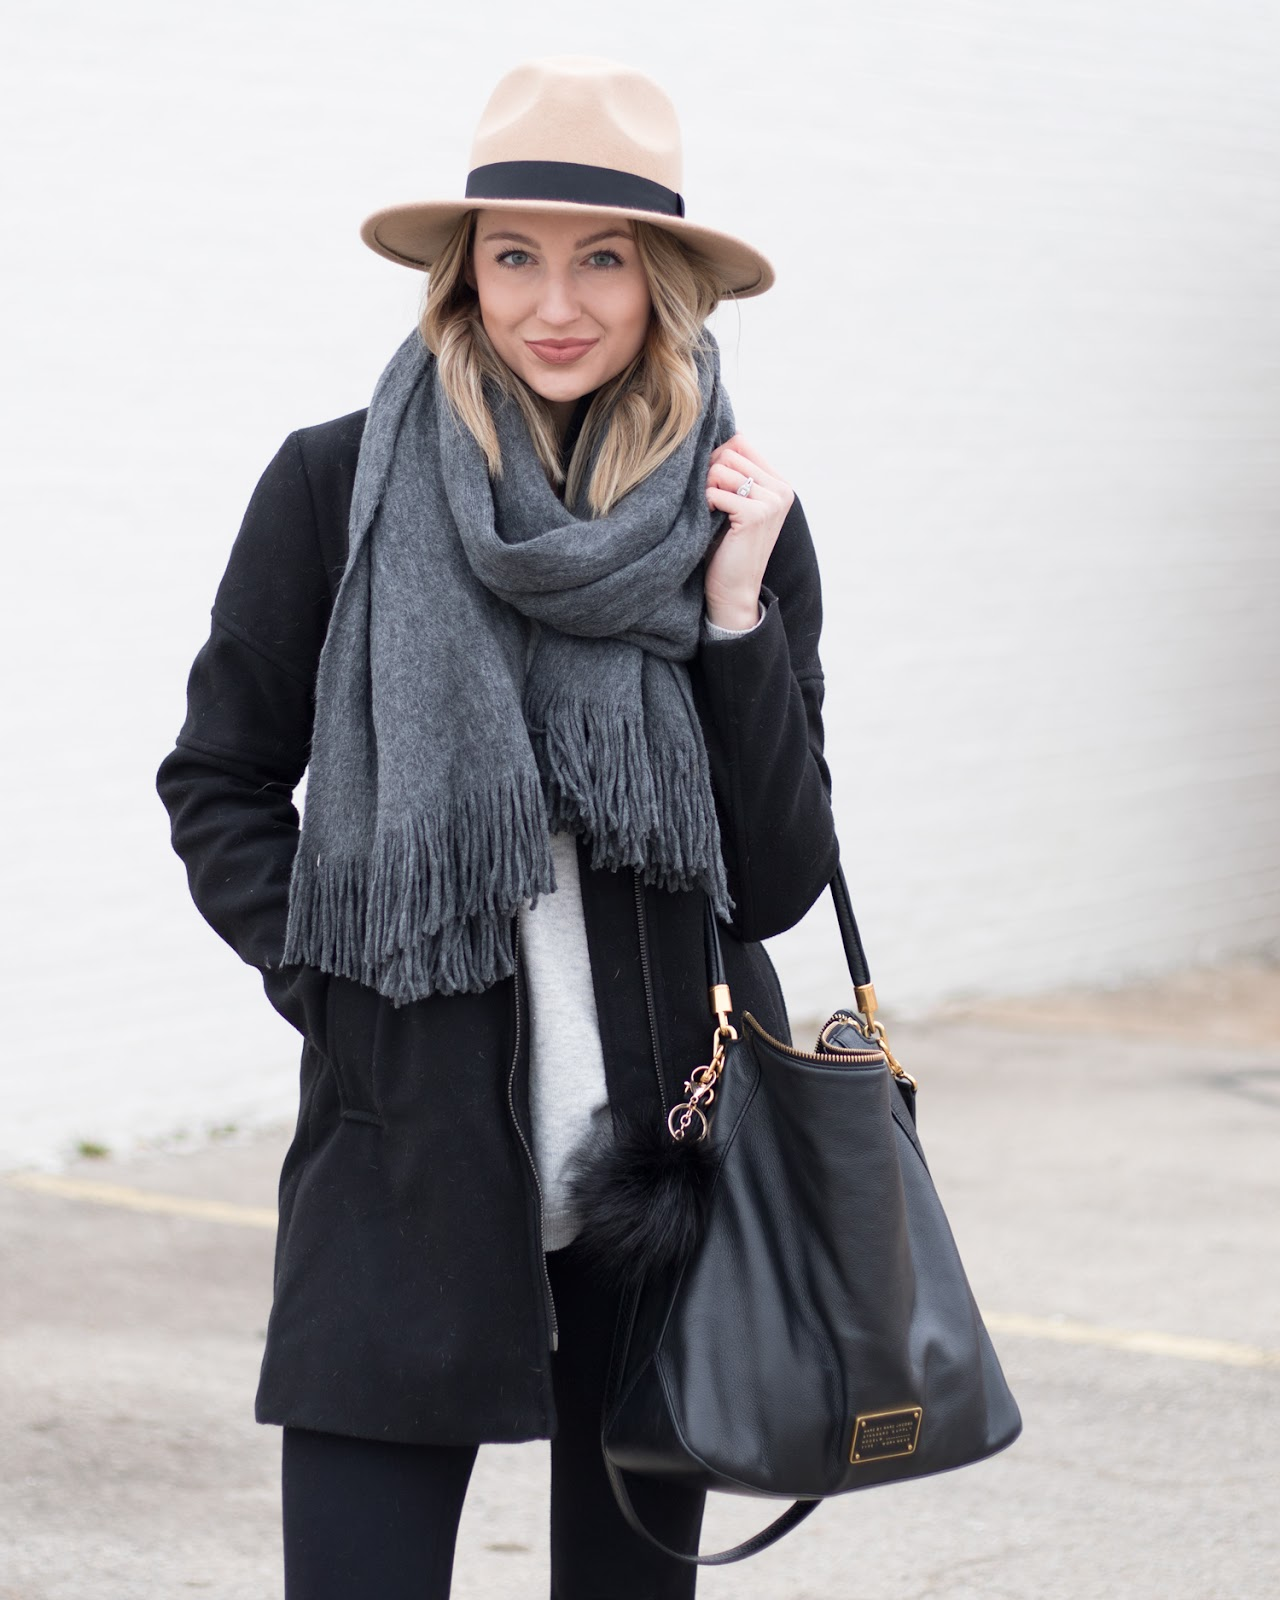 Gray scarf paired with a camel hat